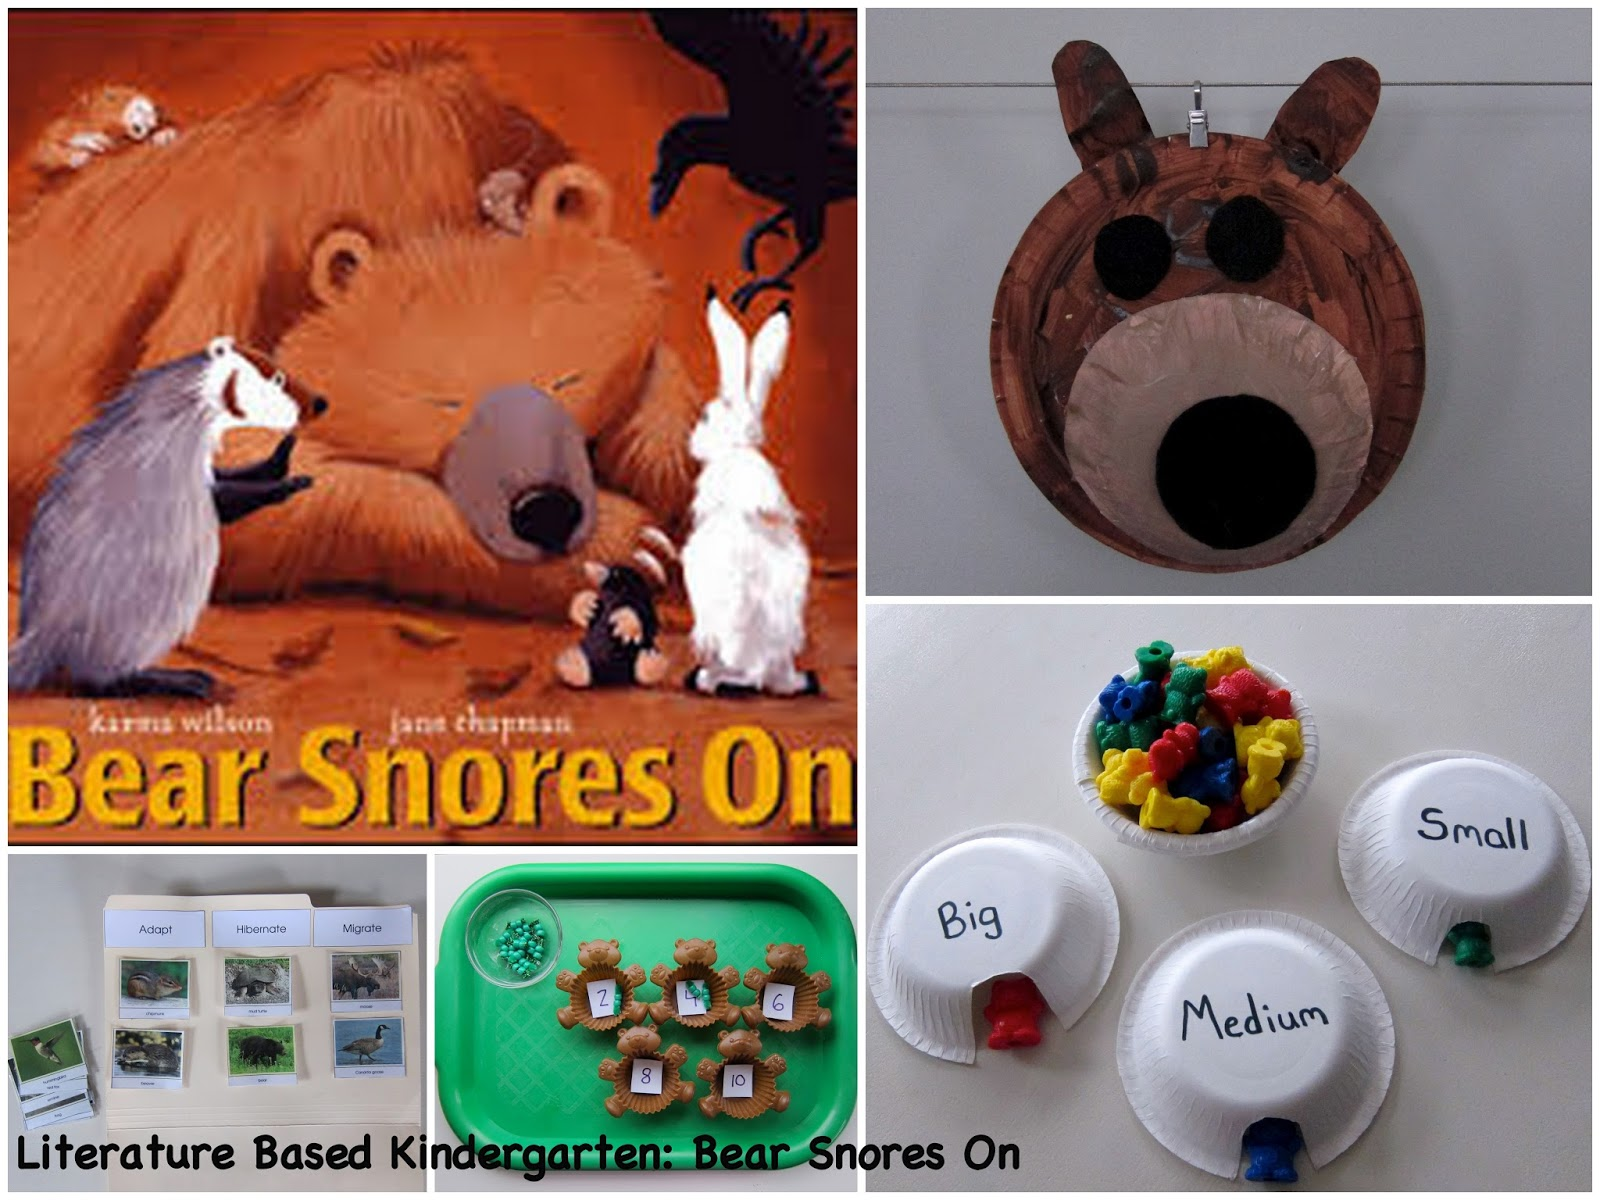 Literature Based Kindergarten Bear Snores On